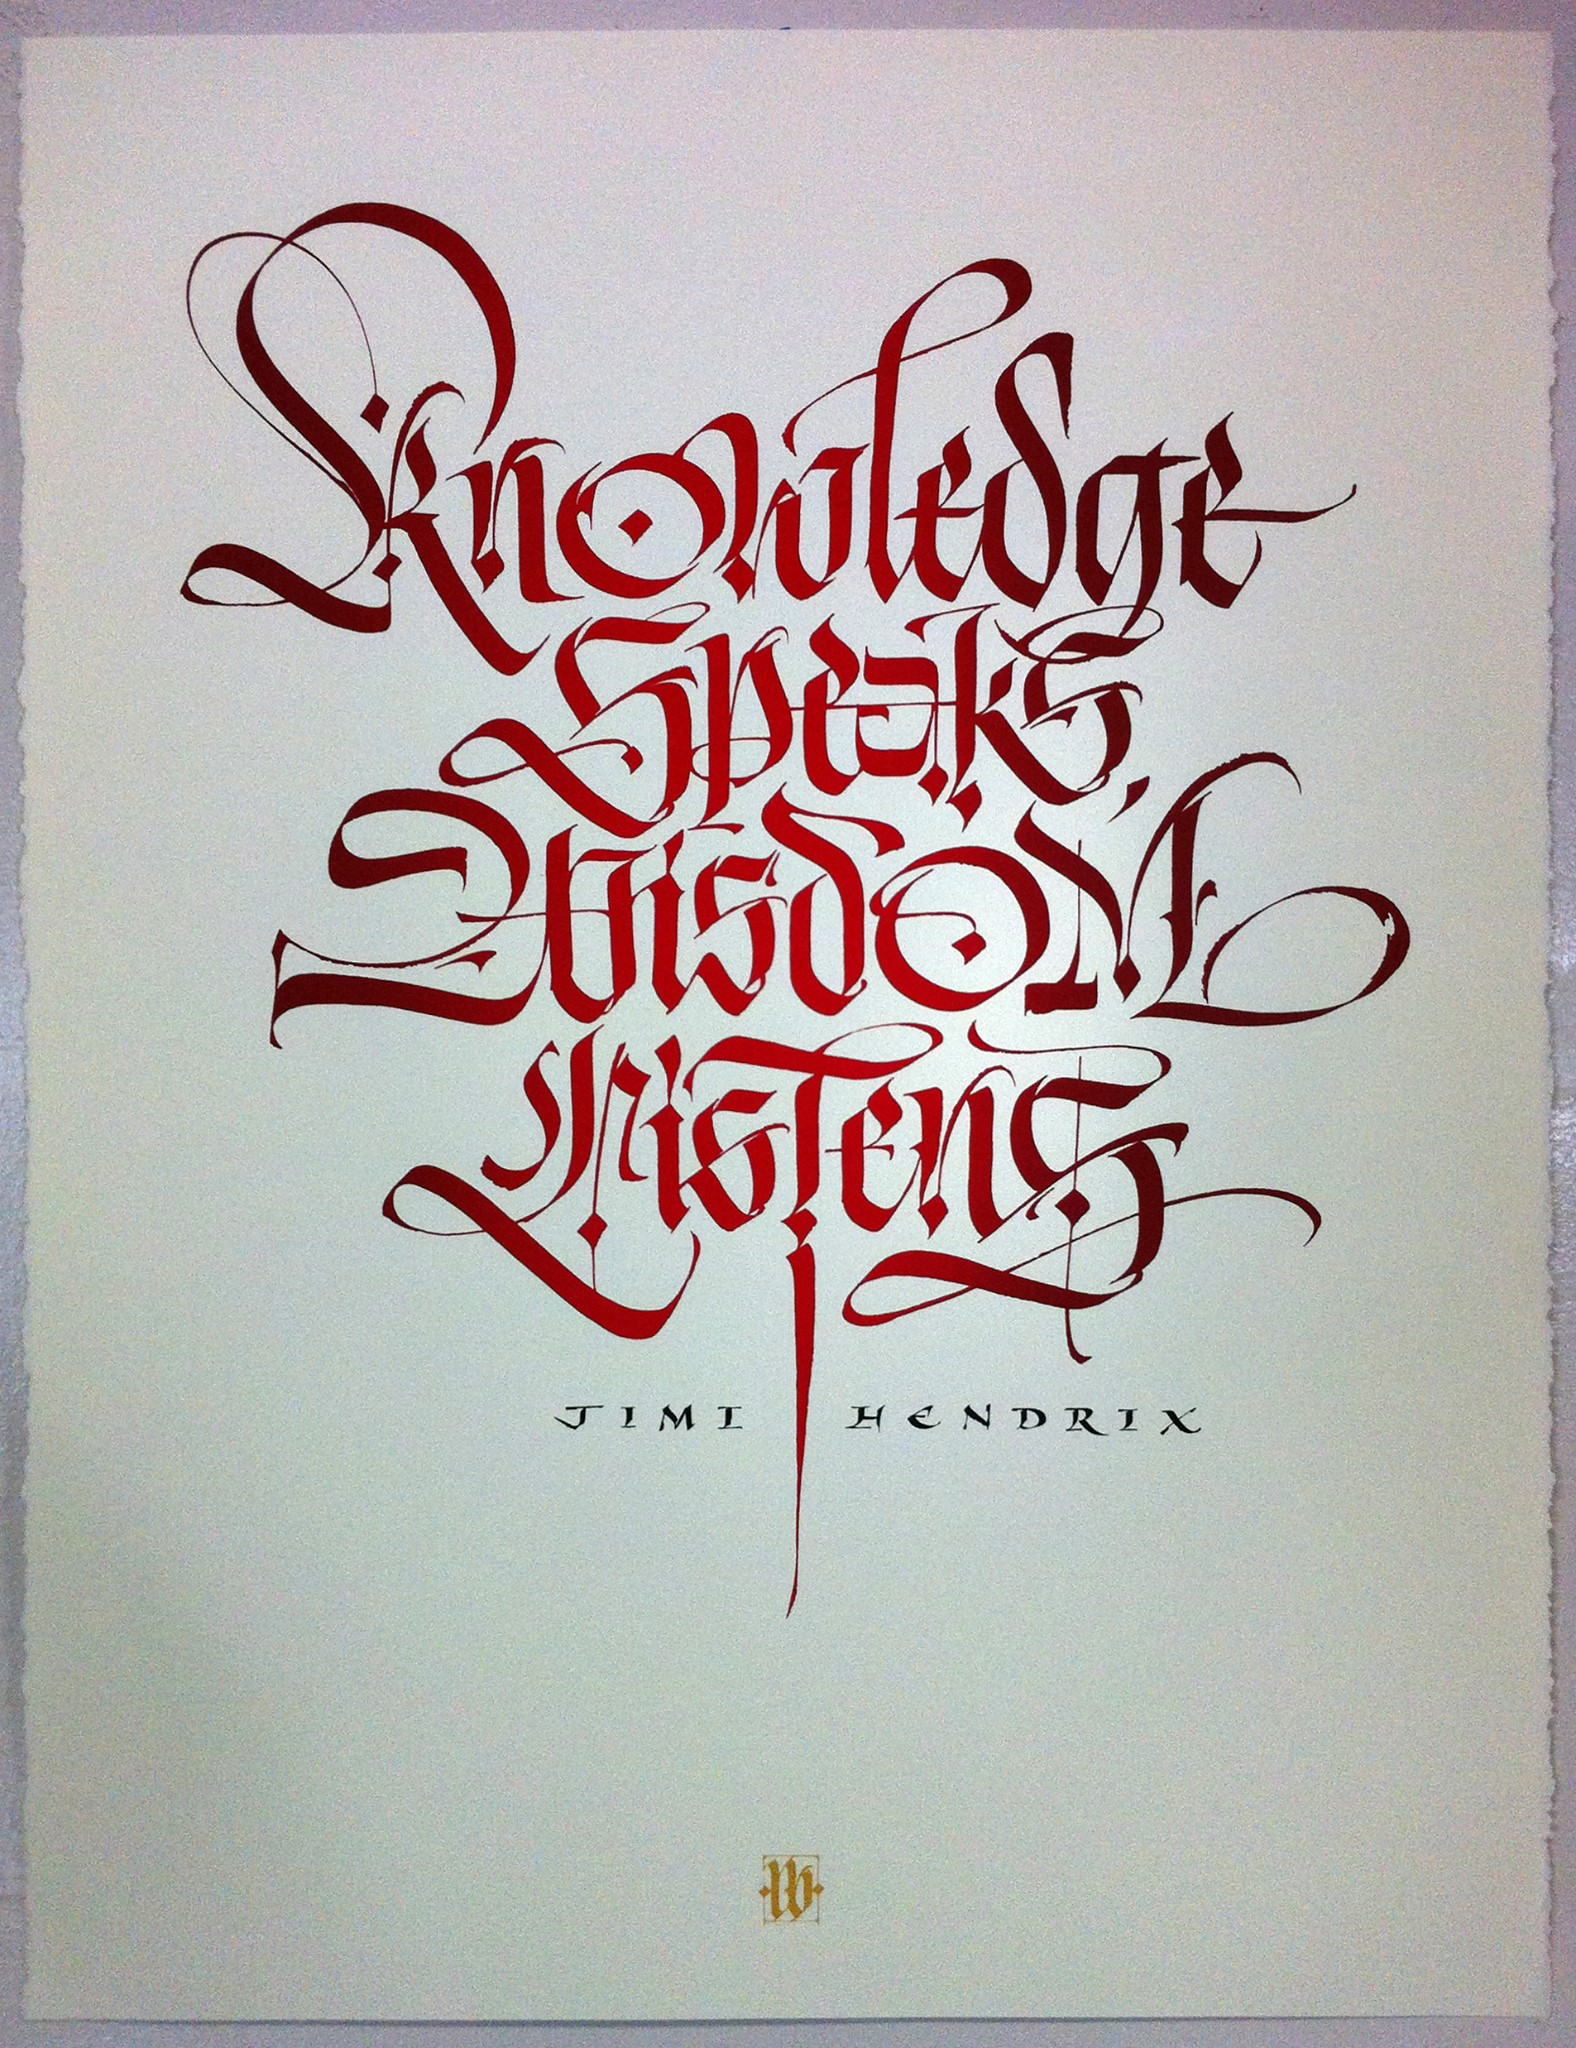 Luca barcellona bon expose museum of art and design Handwriting calligraphy